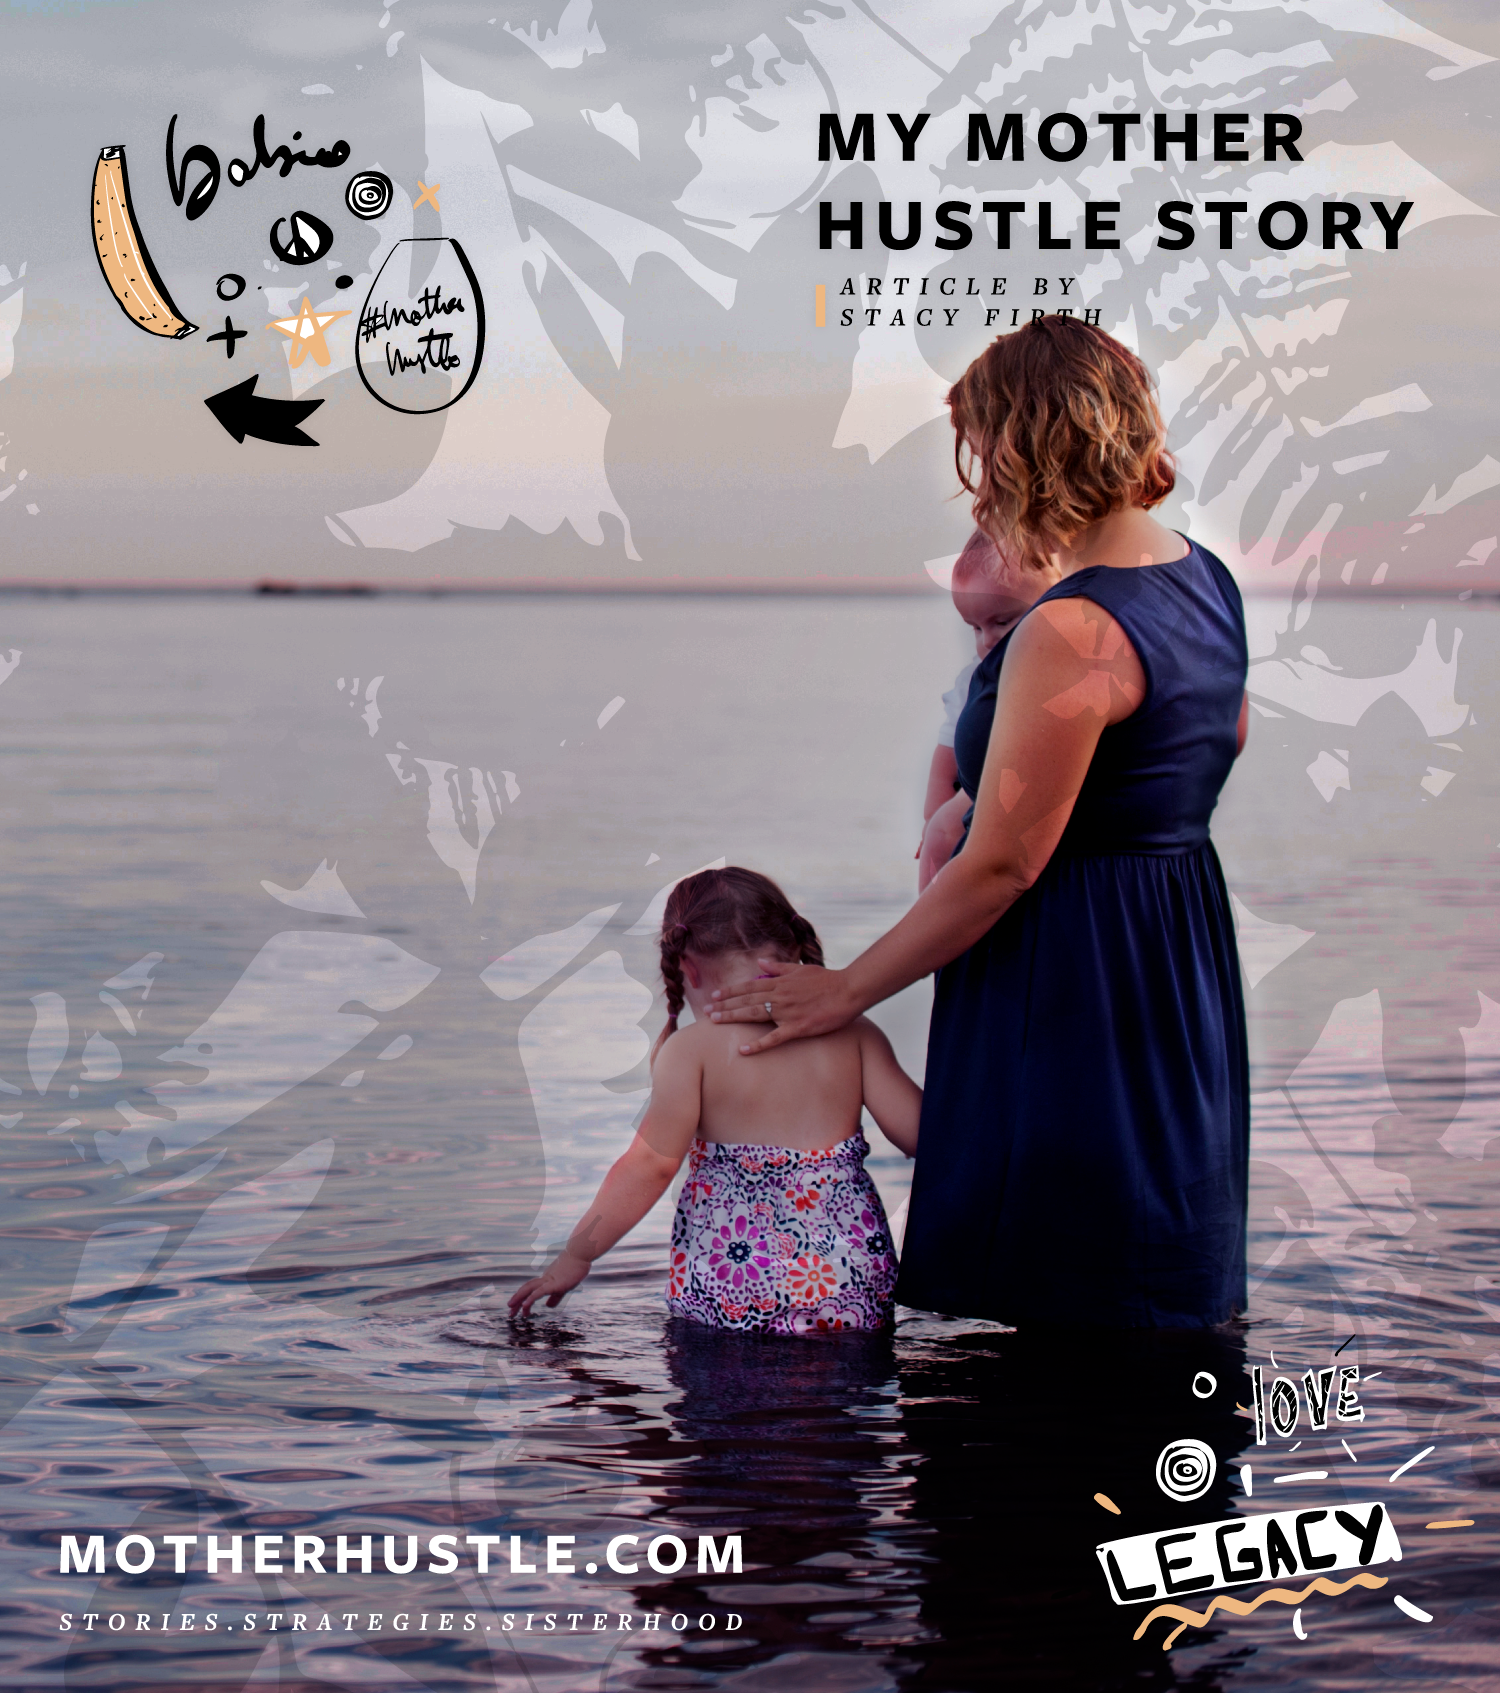 Stacy Firth #MyMotherHustle Story